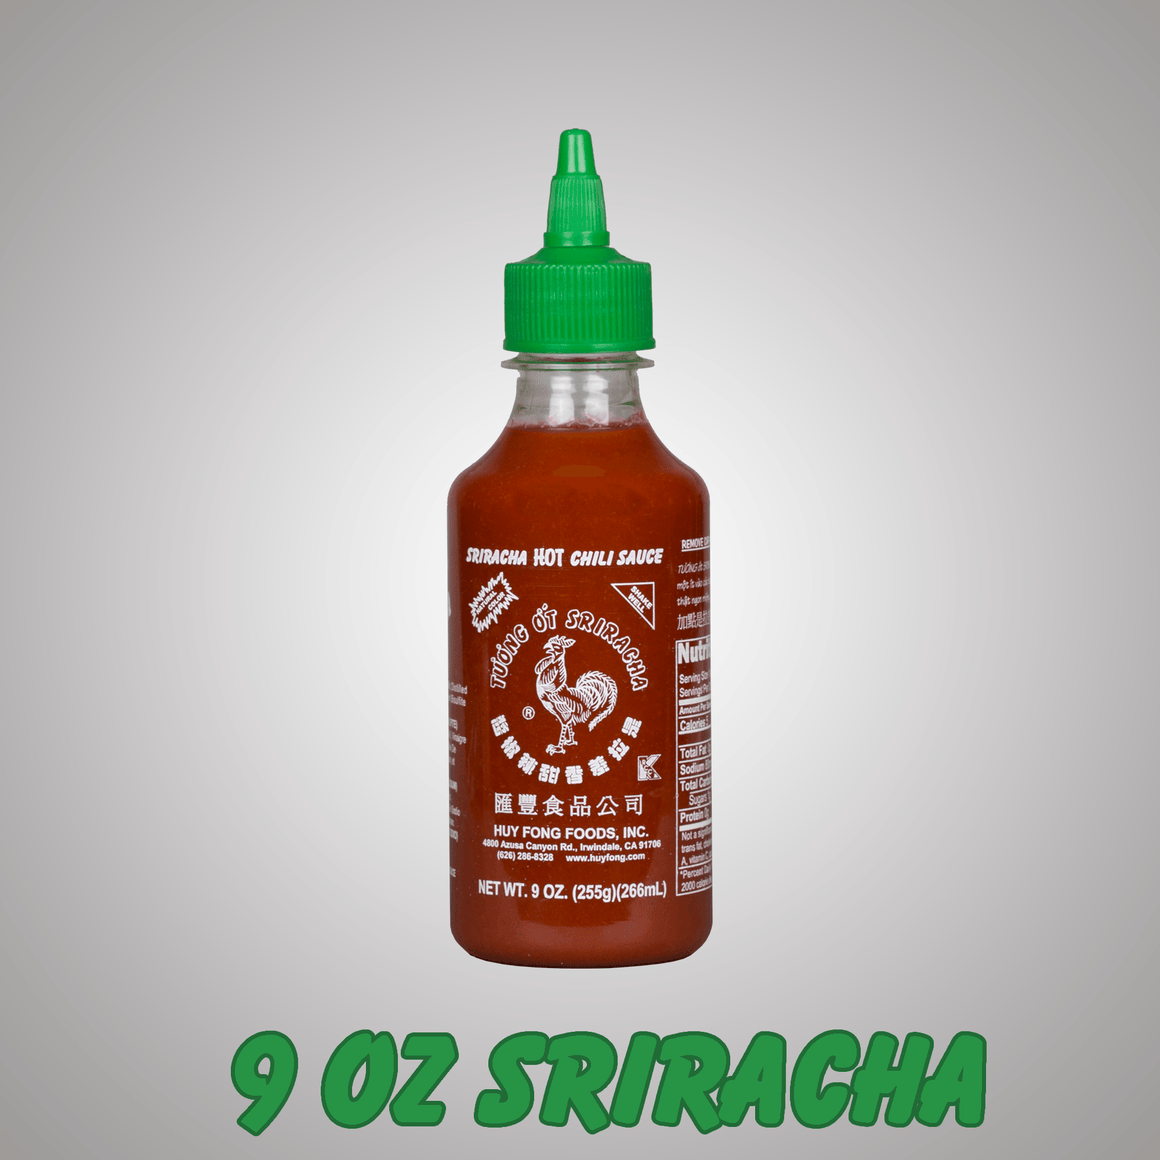 Bundles - Sriracha For You